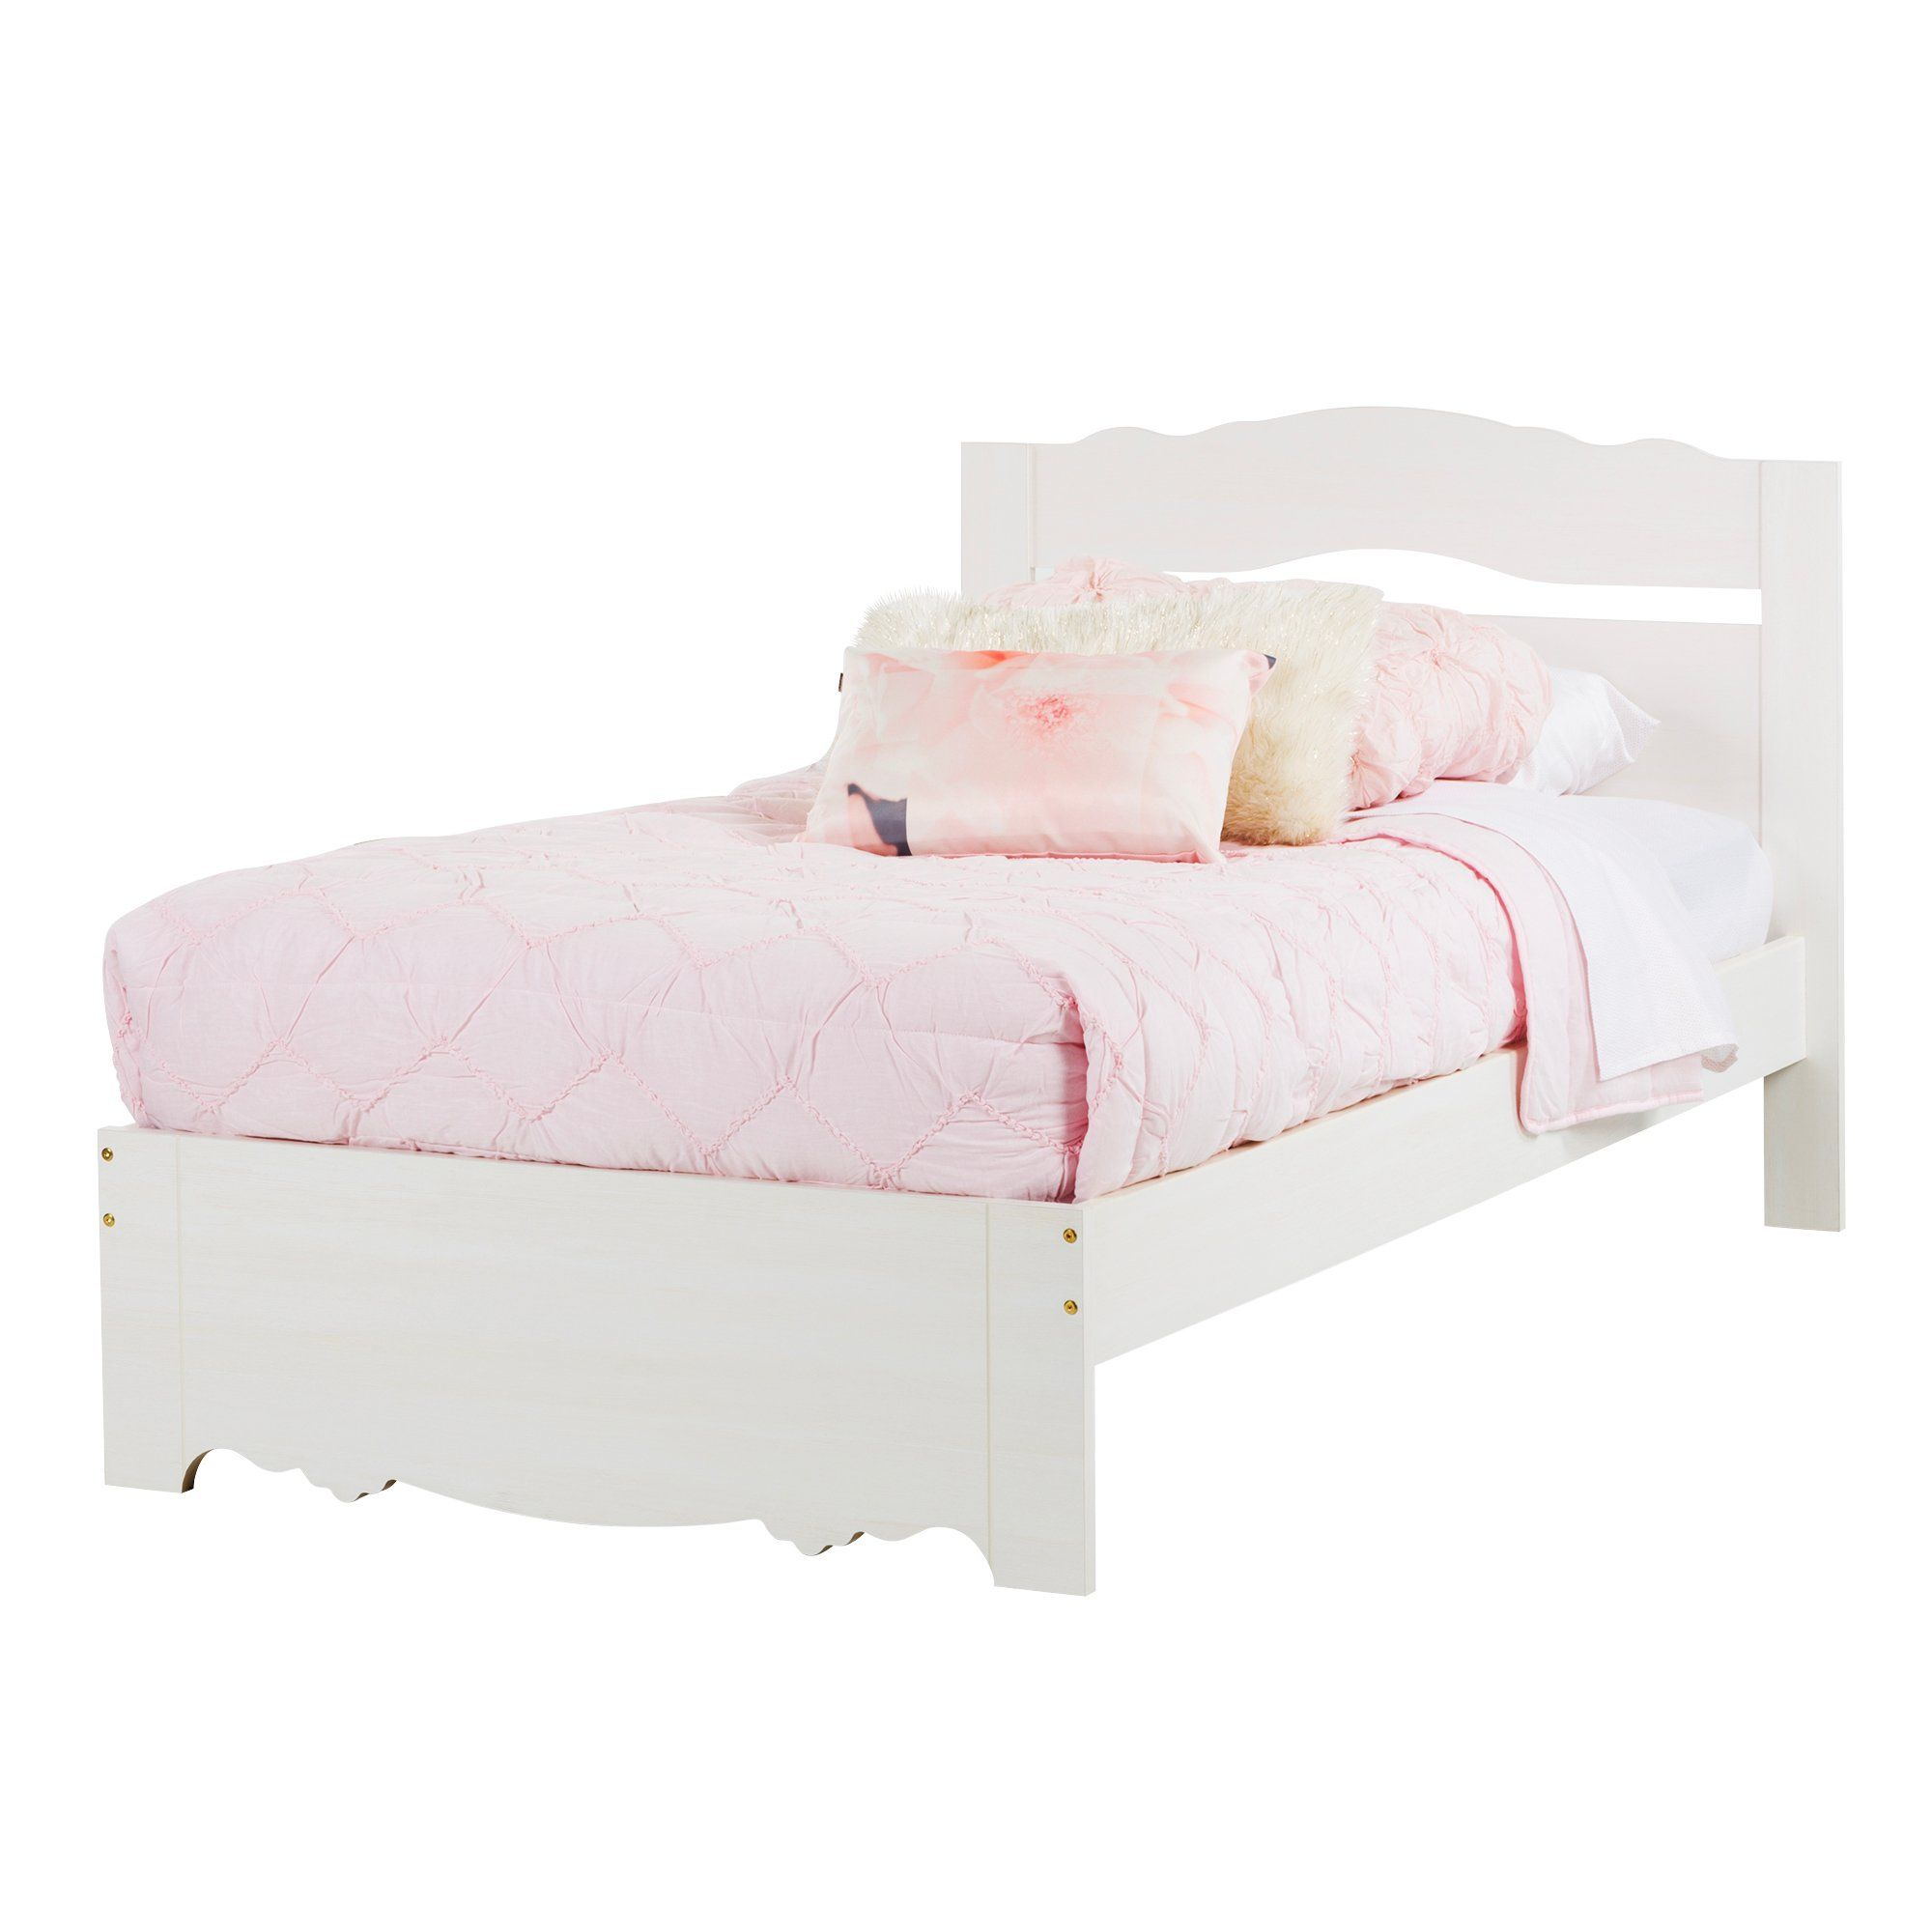 White Wash Twin Bed Set (39 Inch) Lily Rose Bedding